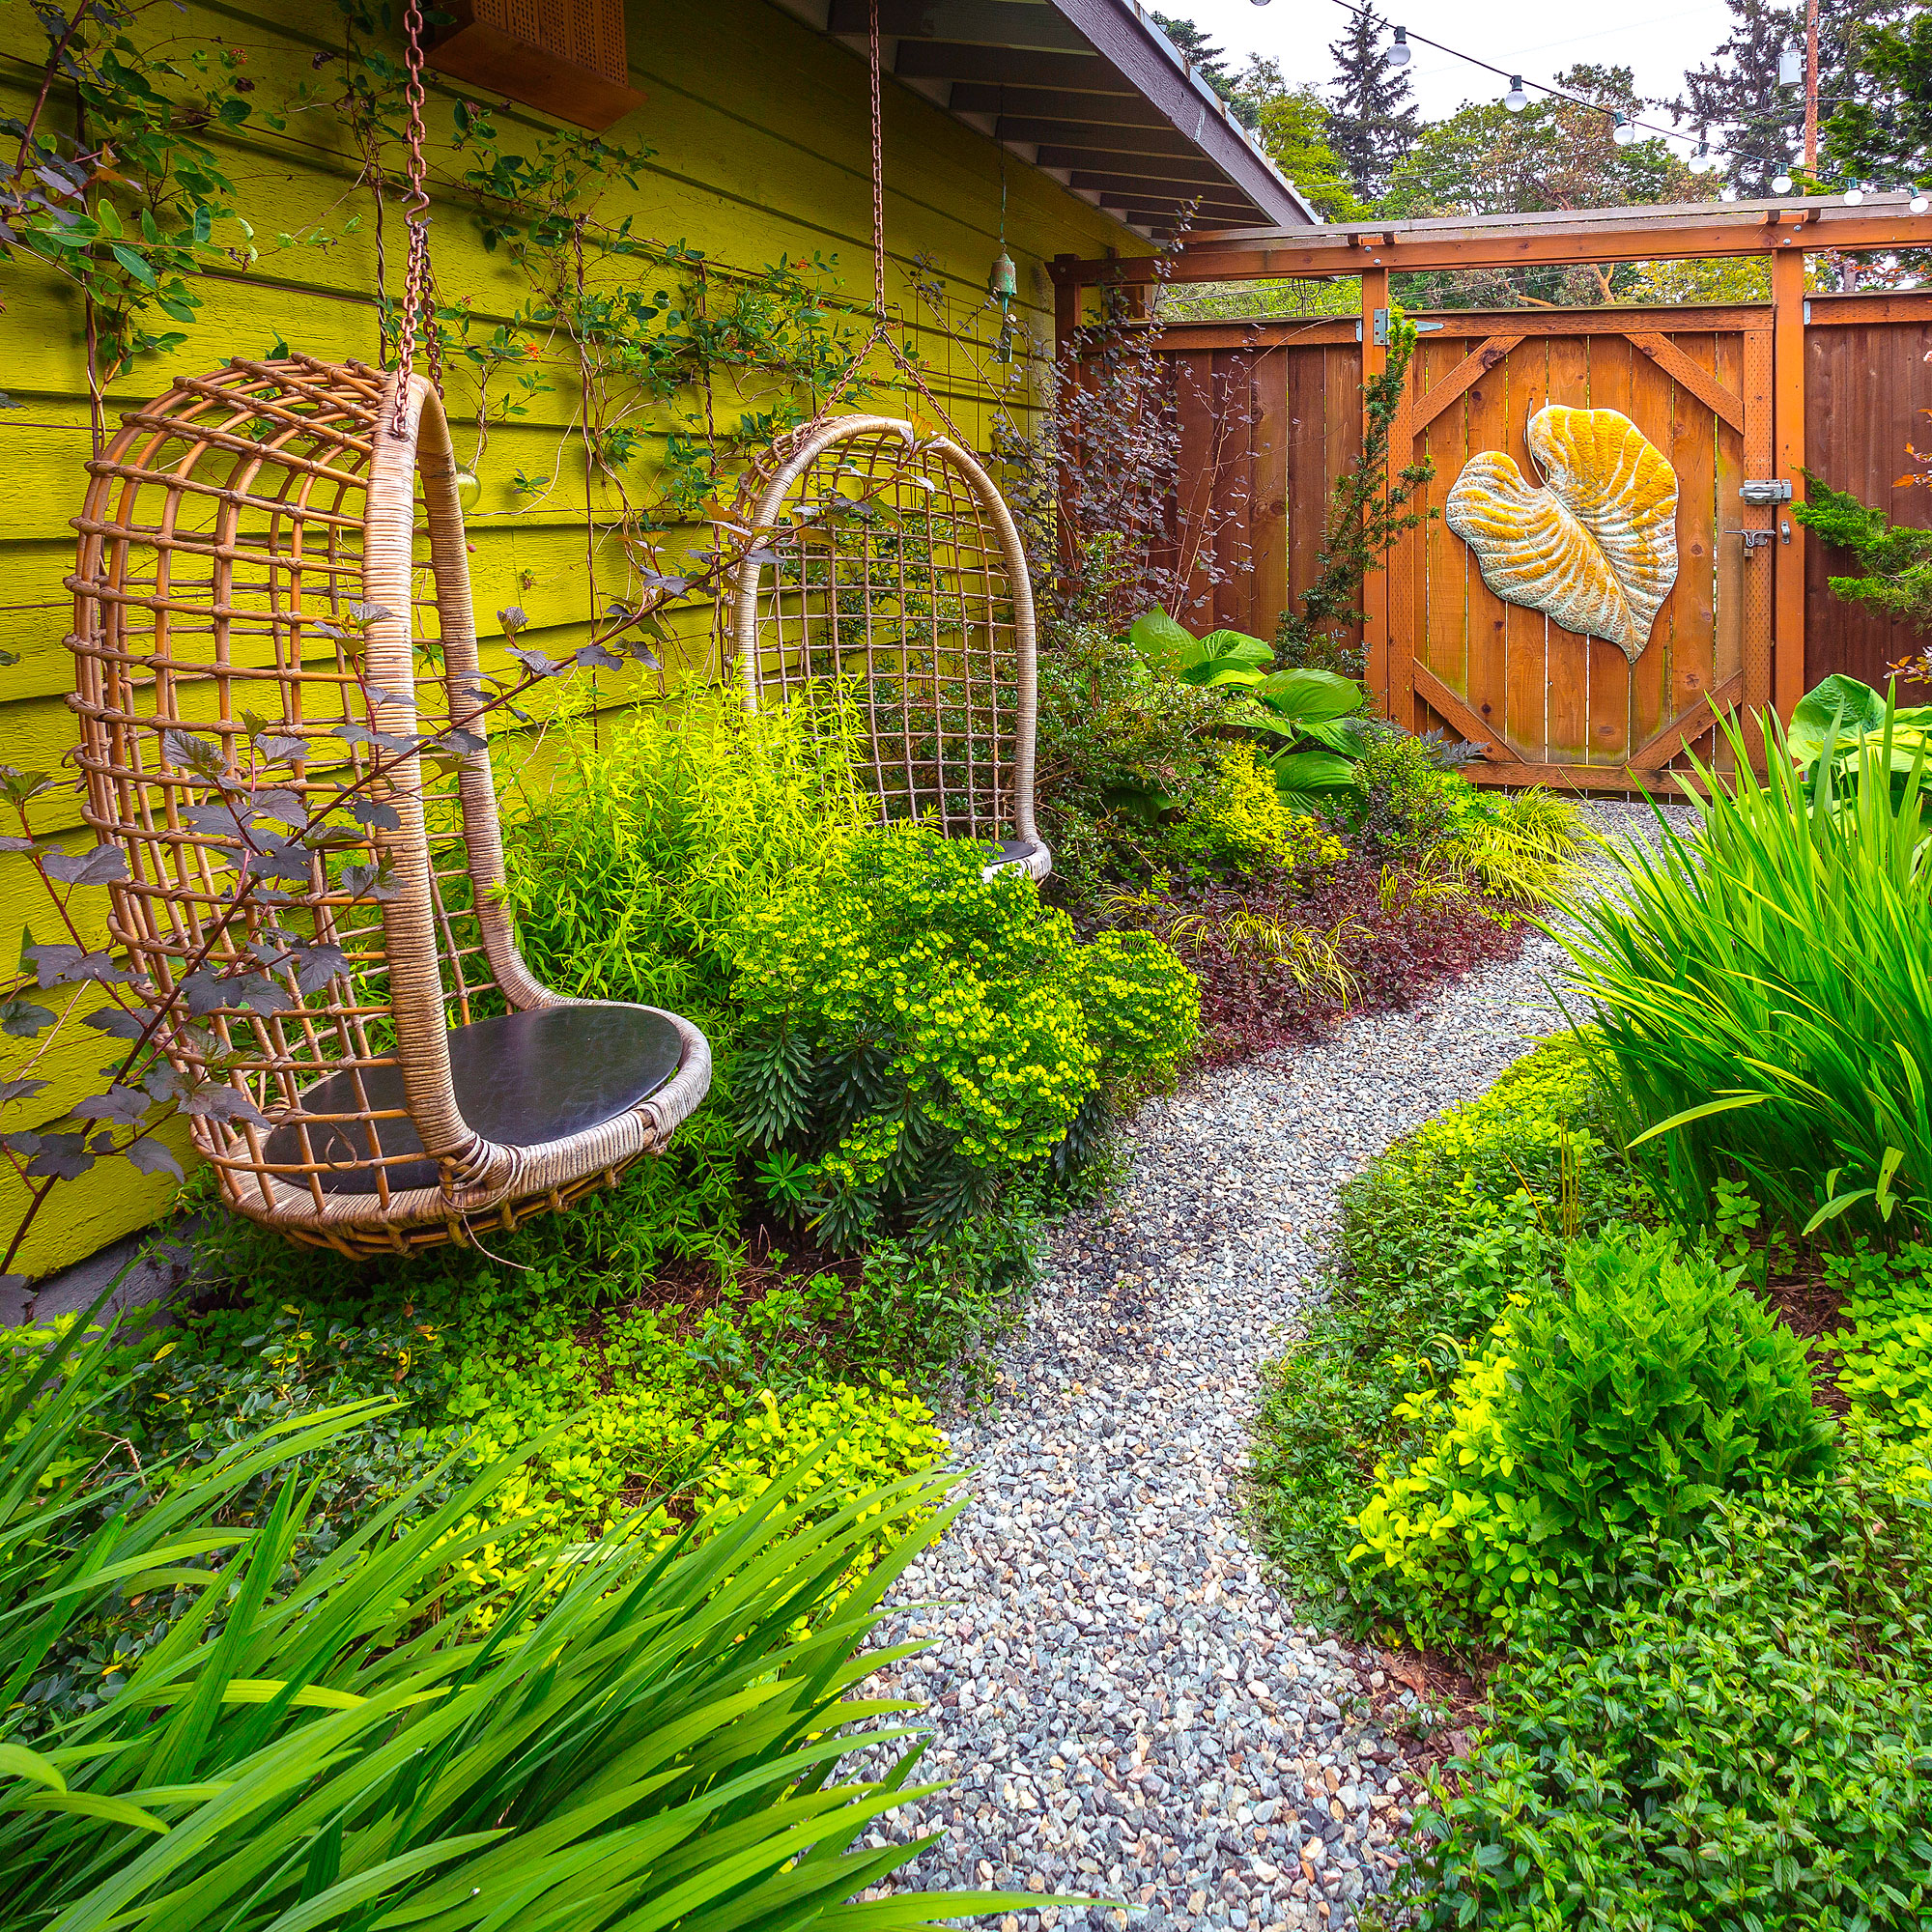 How To Design A Vibrantly Colorful Garden